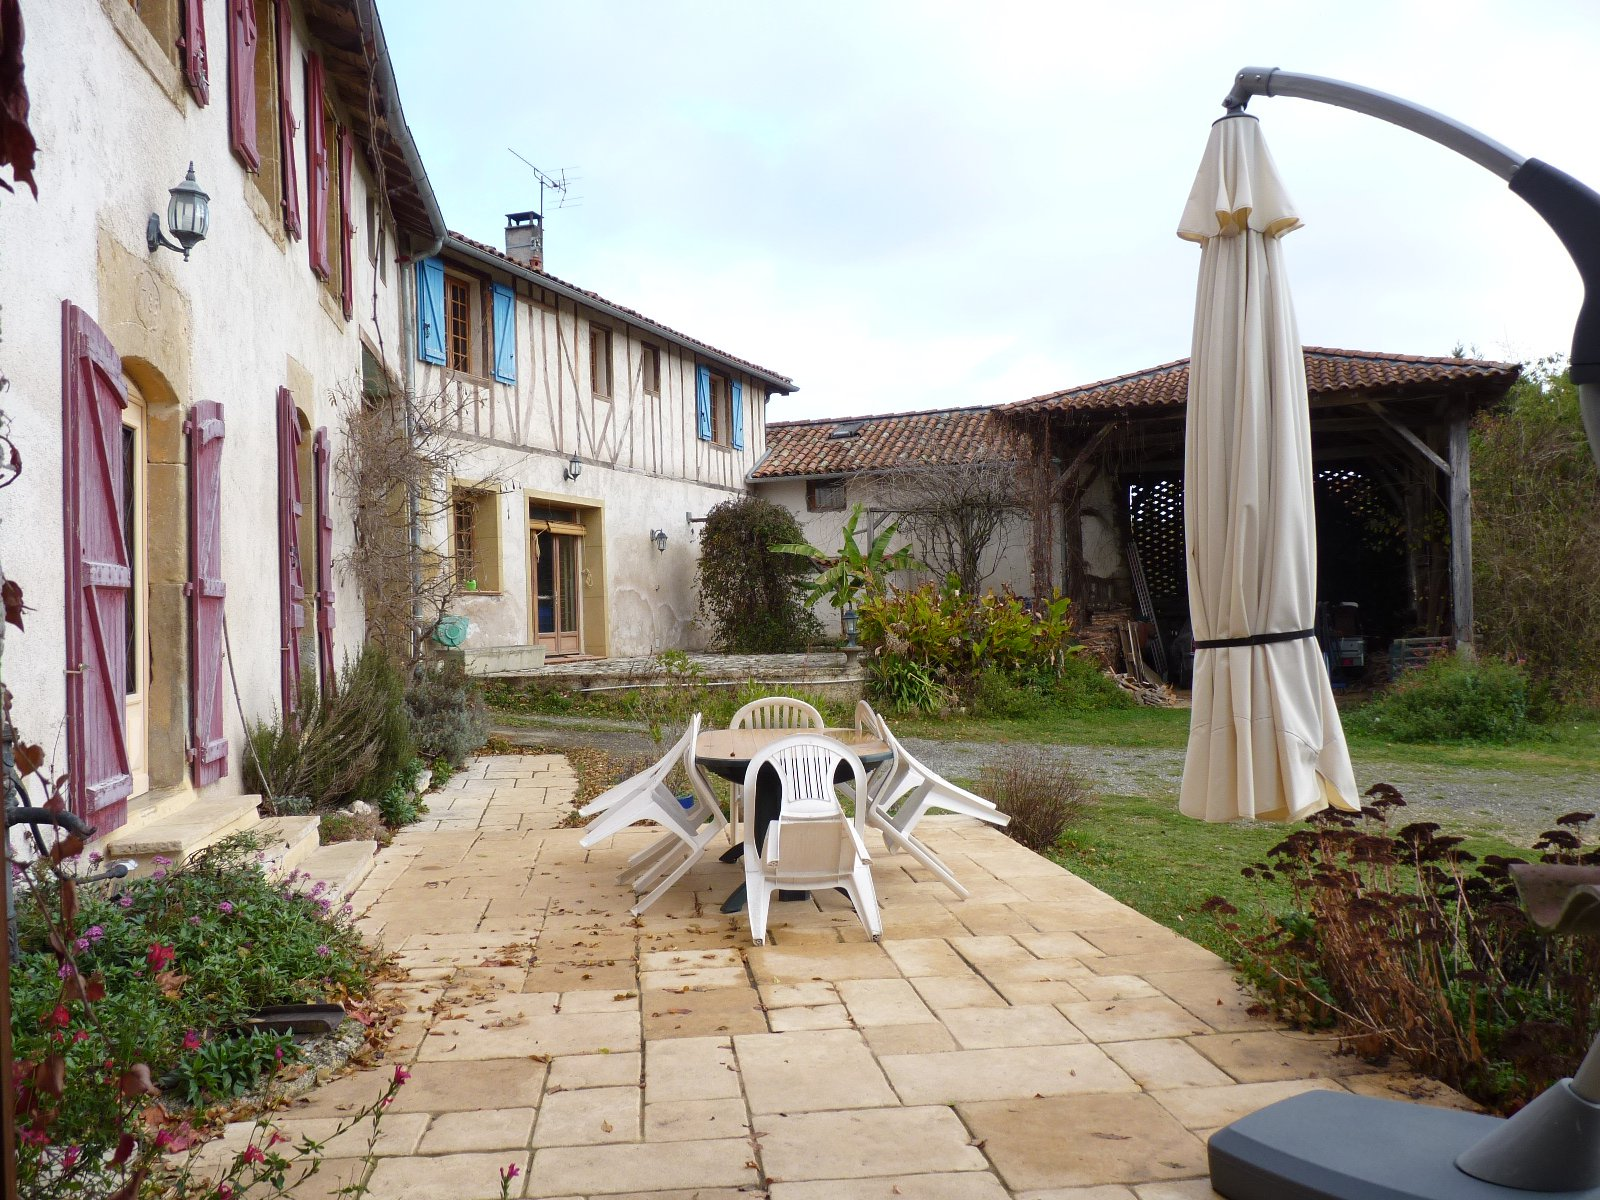 Beautiful renovated farmhouse in 2 houses, a bakery and outbuildings on more than 1 hectare